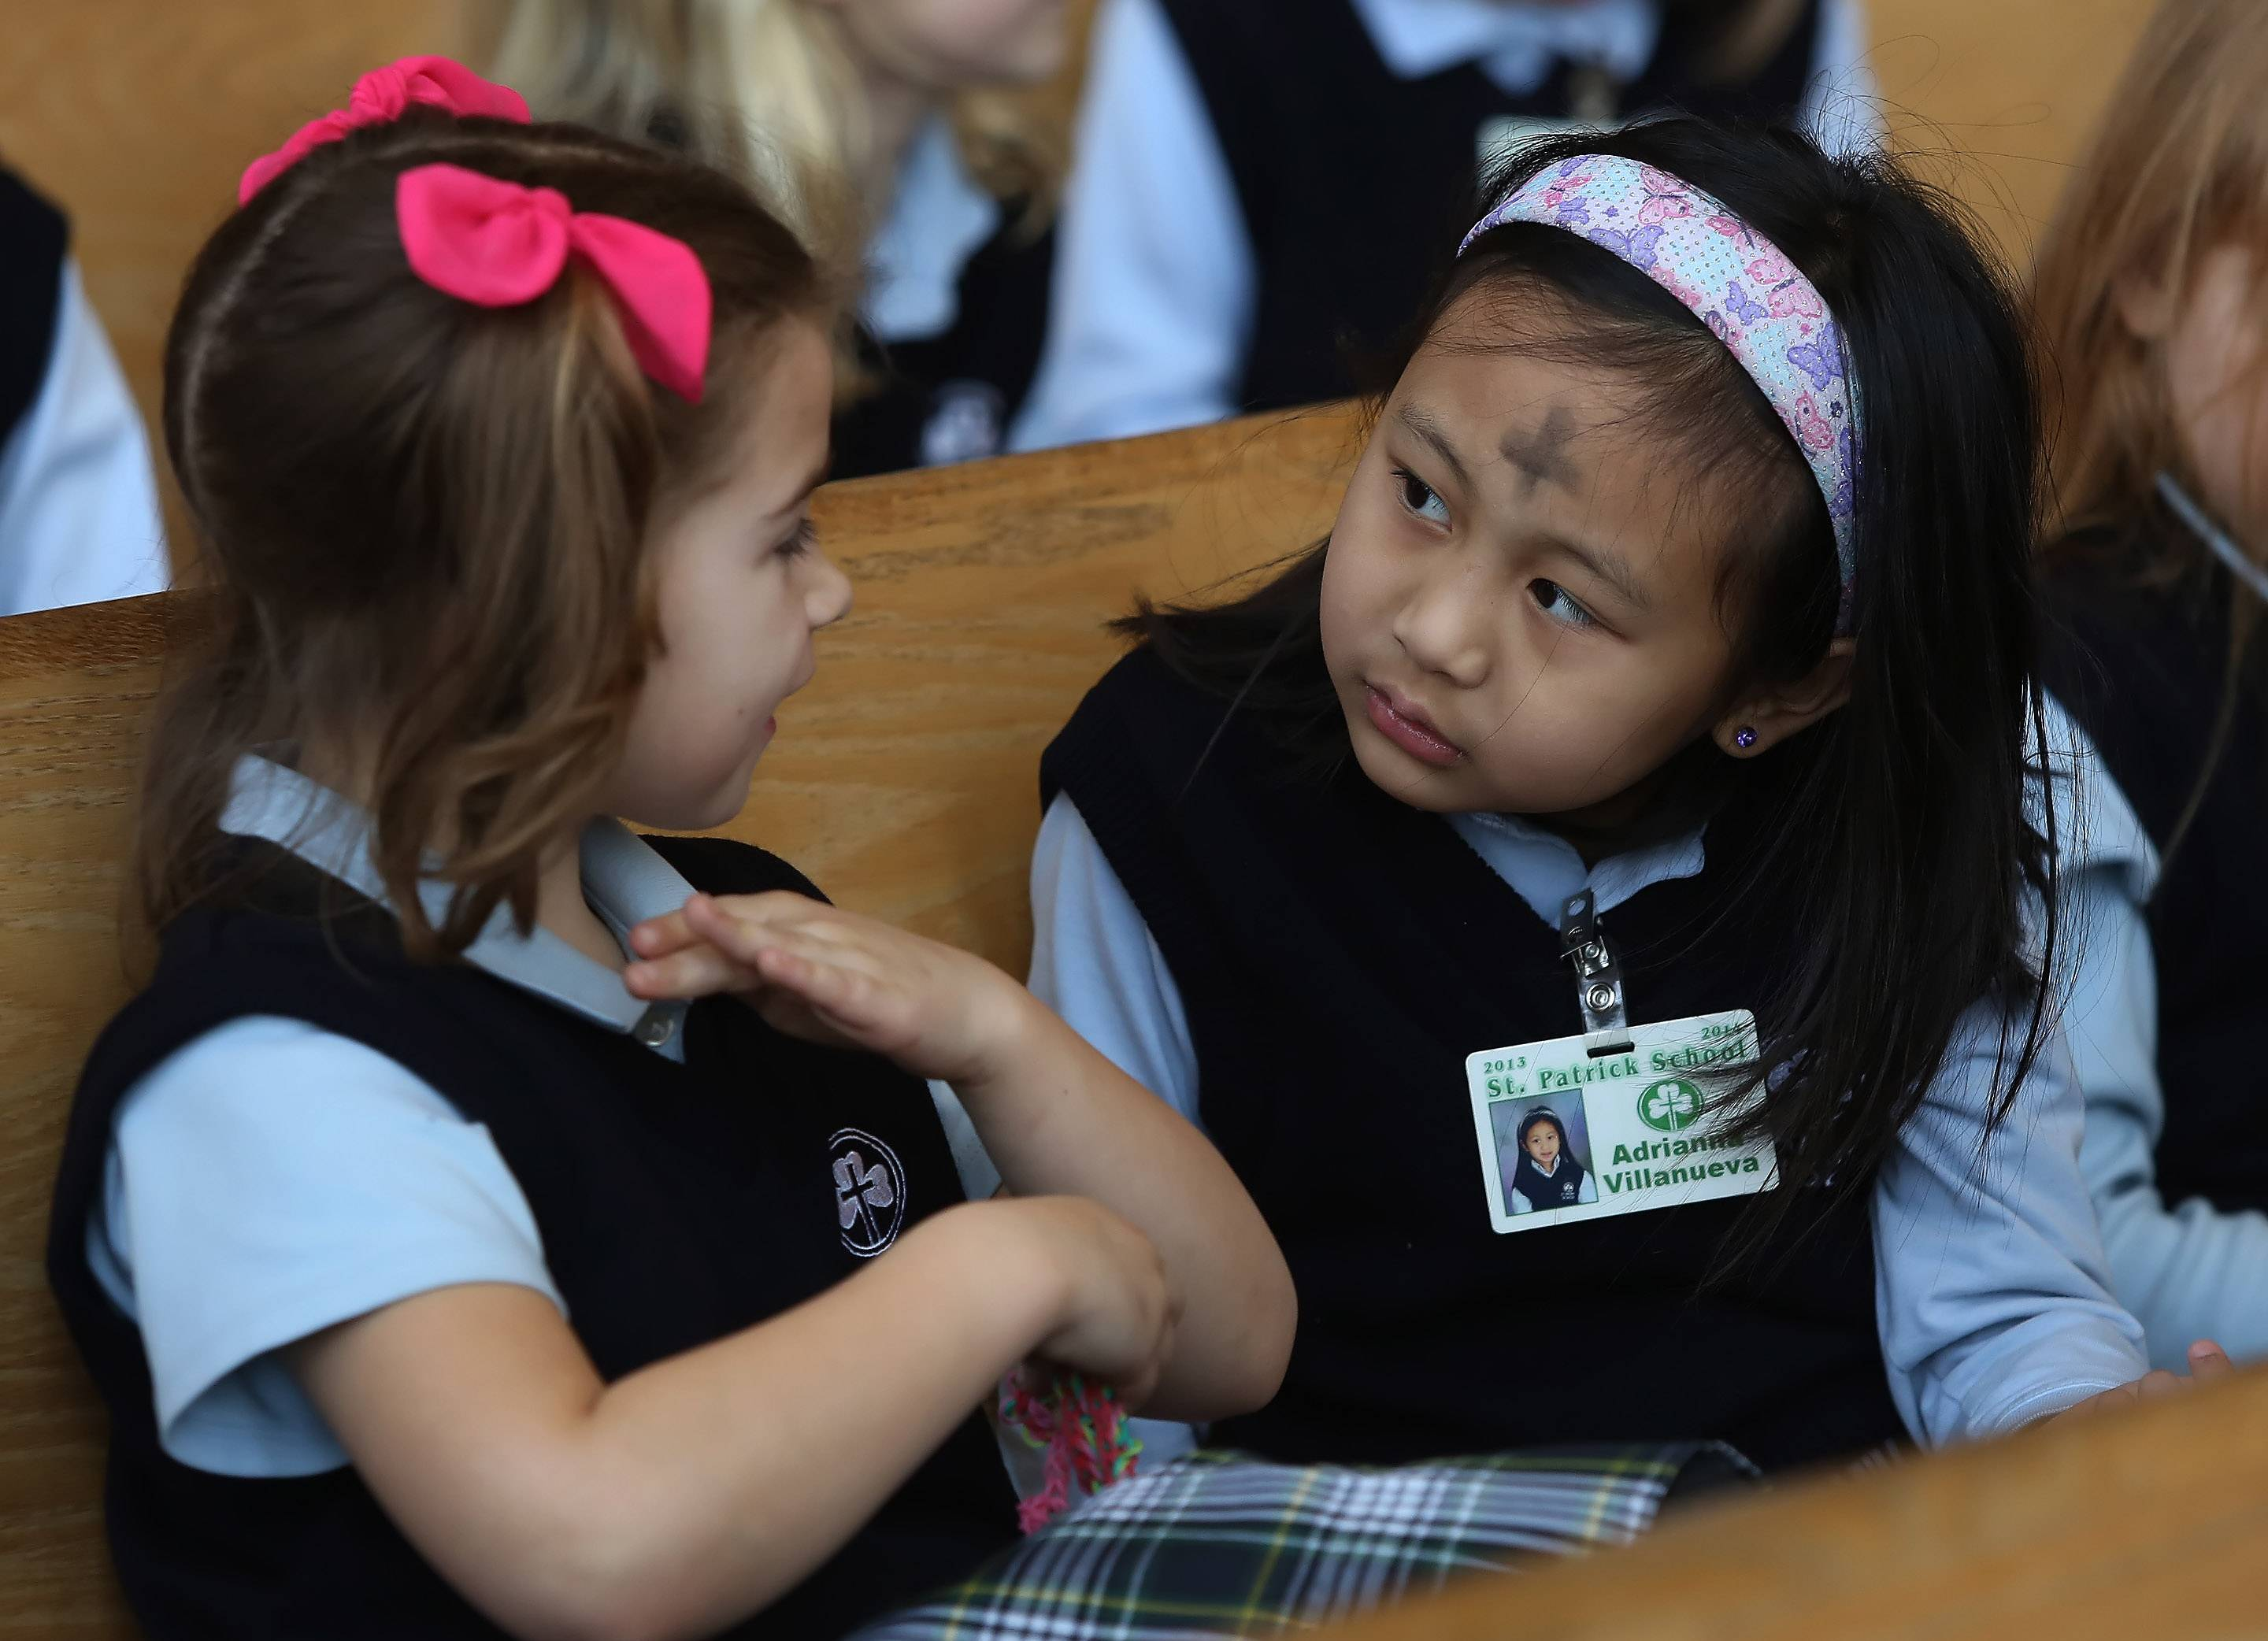 St. Patrick School first graders Brianna Brincks, left, and Adrianna Villanueva, talk about thier ashes on their foreheads as they attended Ash Wednesday service at St. Patrick Catholic Church in Wadsworth. Ash Wednesday marks the beginning of Lent that culminates in Easter Sunday.